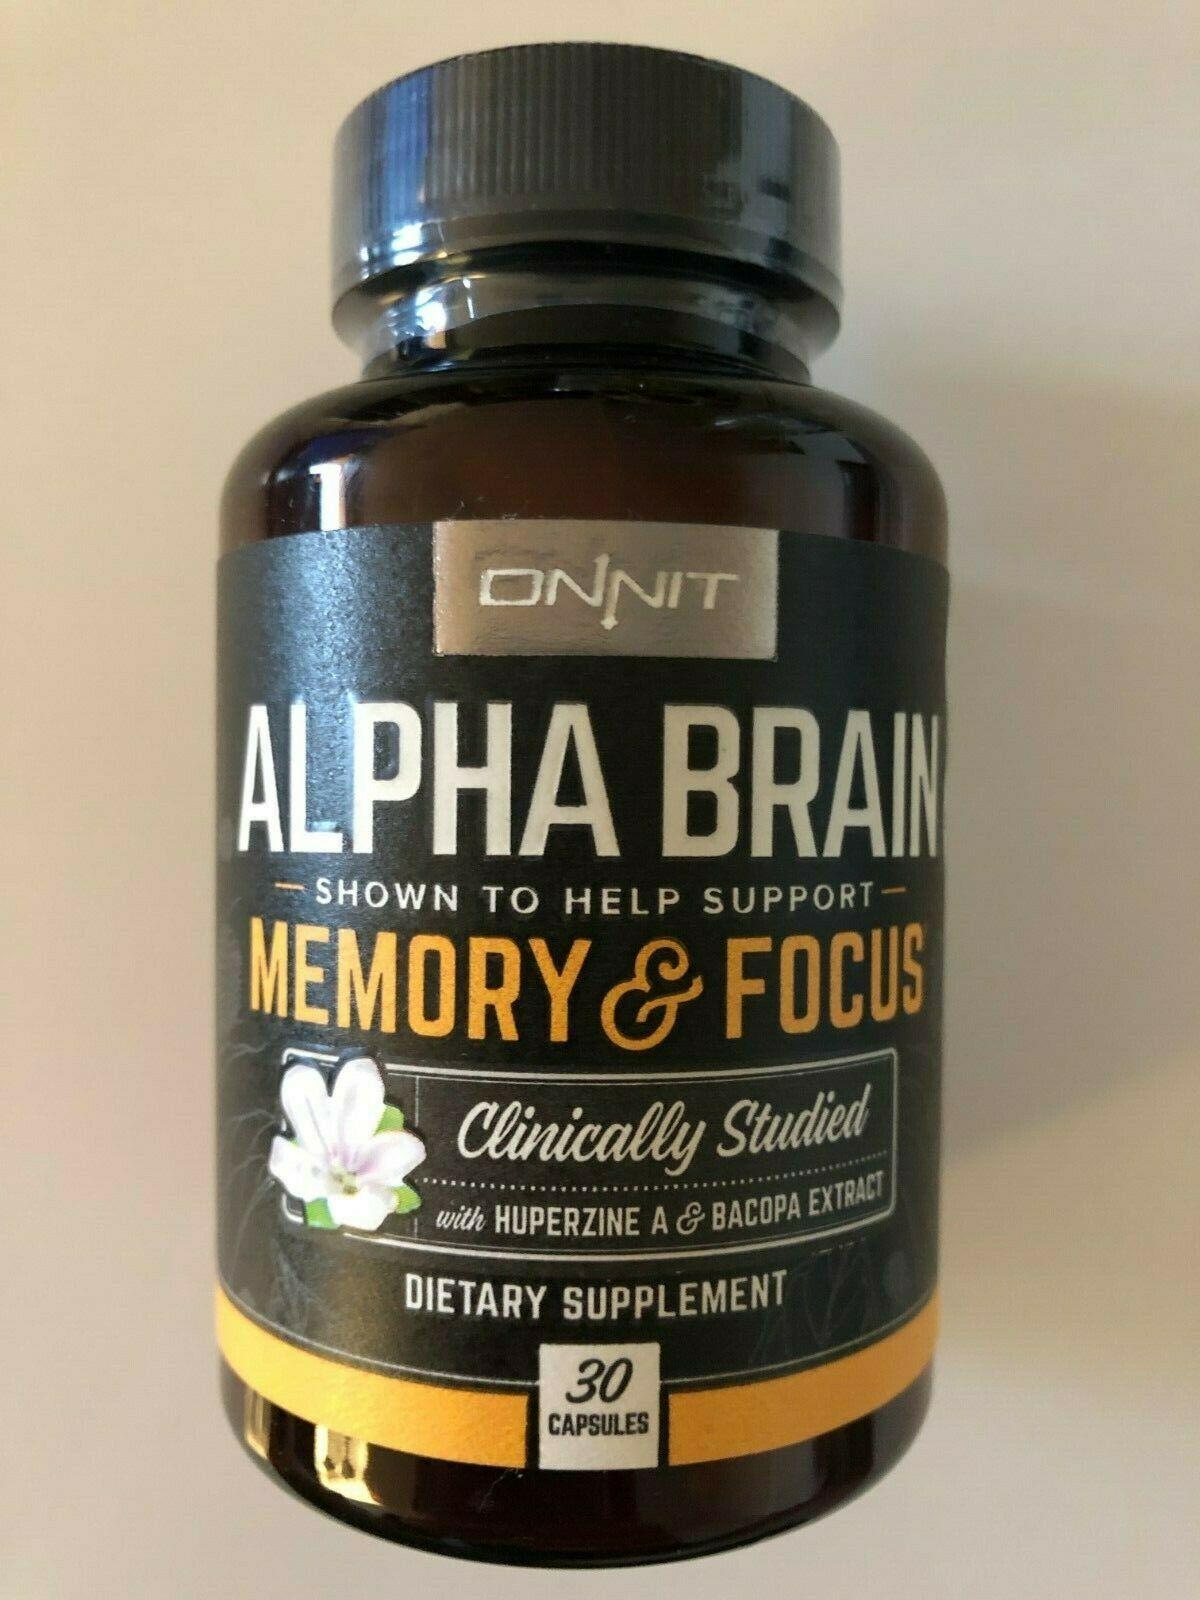 ONNIT: Alpha Brain Supplement - MEMORY & FOCUS | 30 Ct | **CLINICALLY STUDIED**